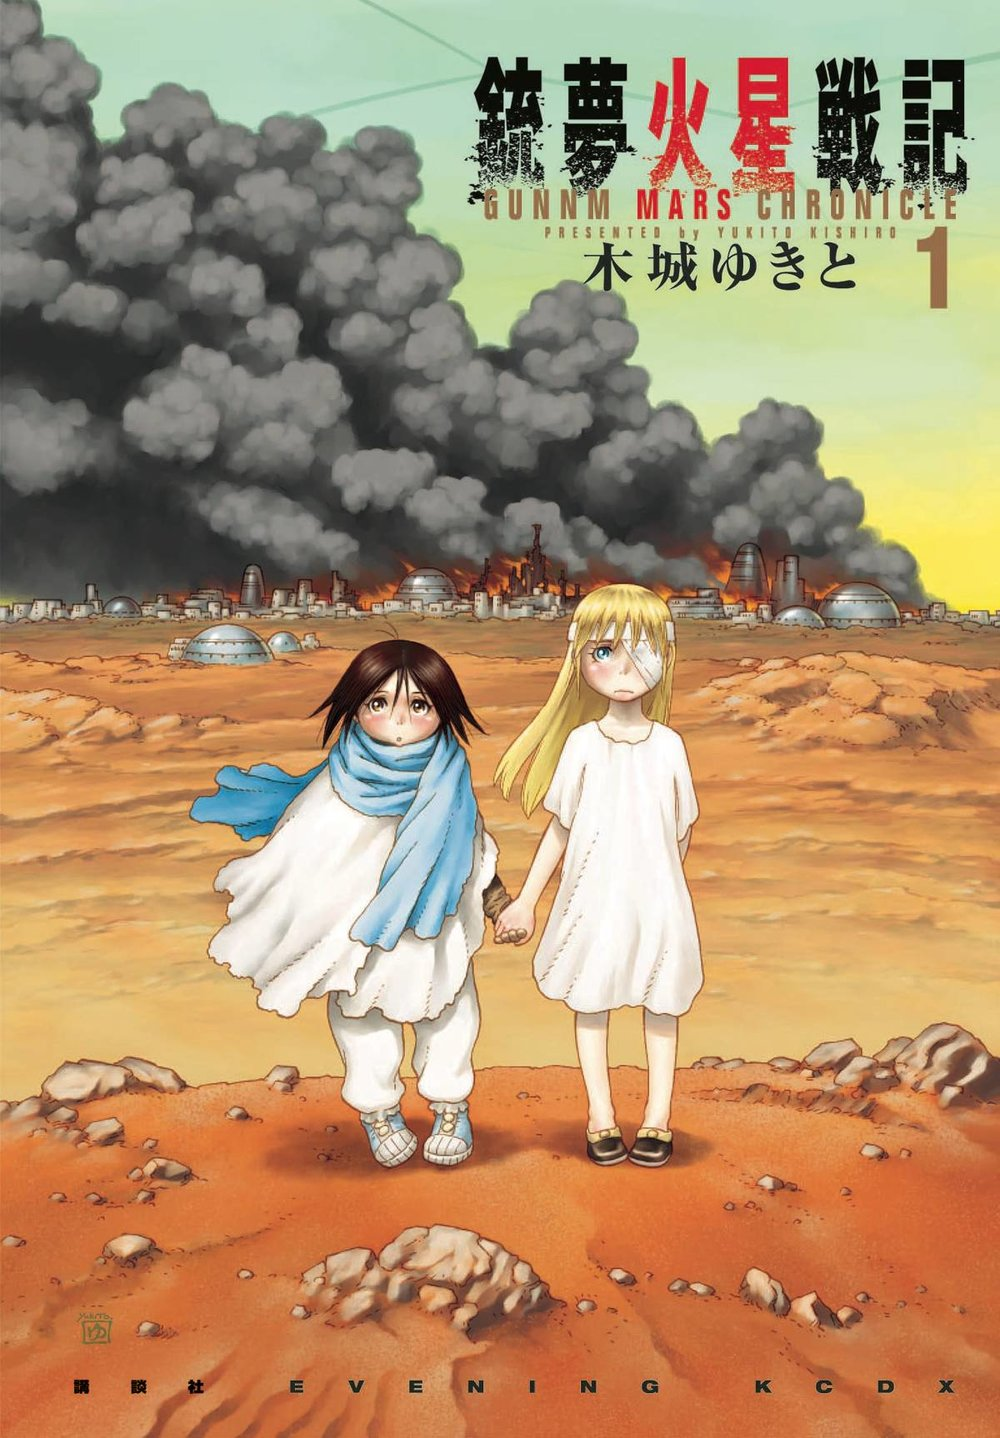 BATTLE ANGEL ALITA MARS CHRONICLE GN 1.jpg